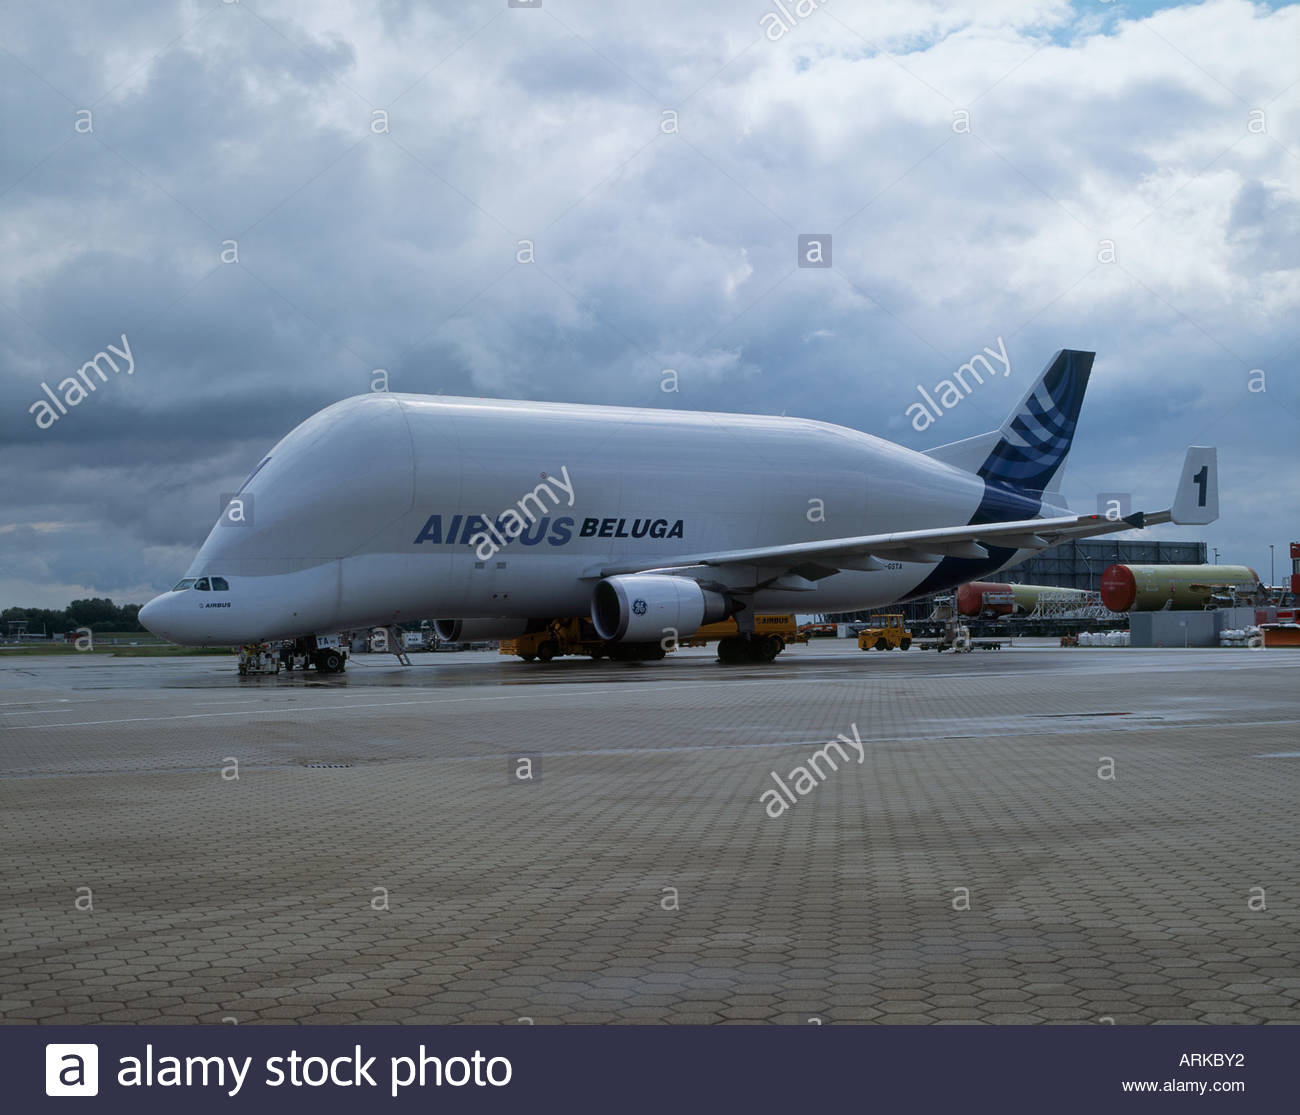 an airbus beluga stockfotos an airbus beluga bilder alamy. Black Bedroom Furniture Sets. Home Design Ideas